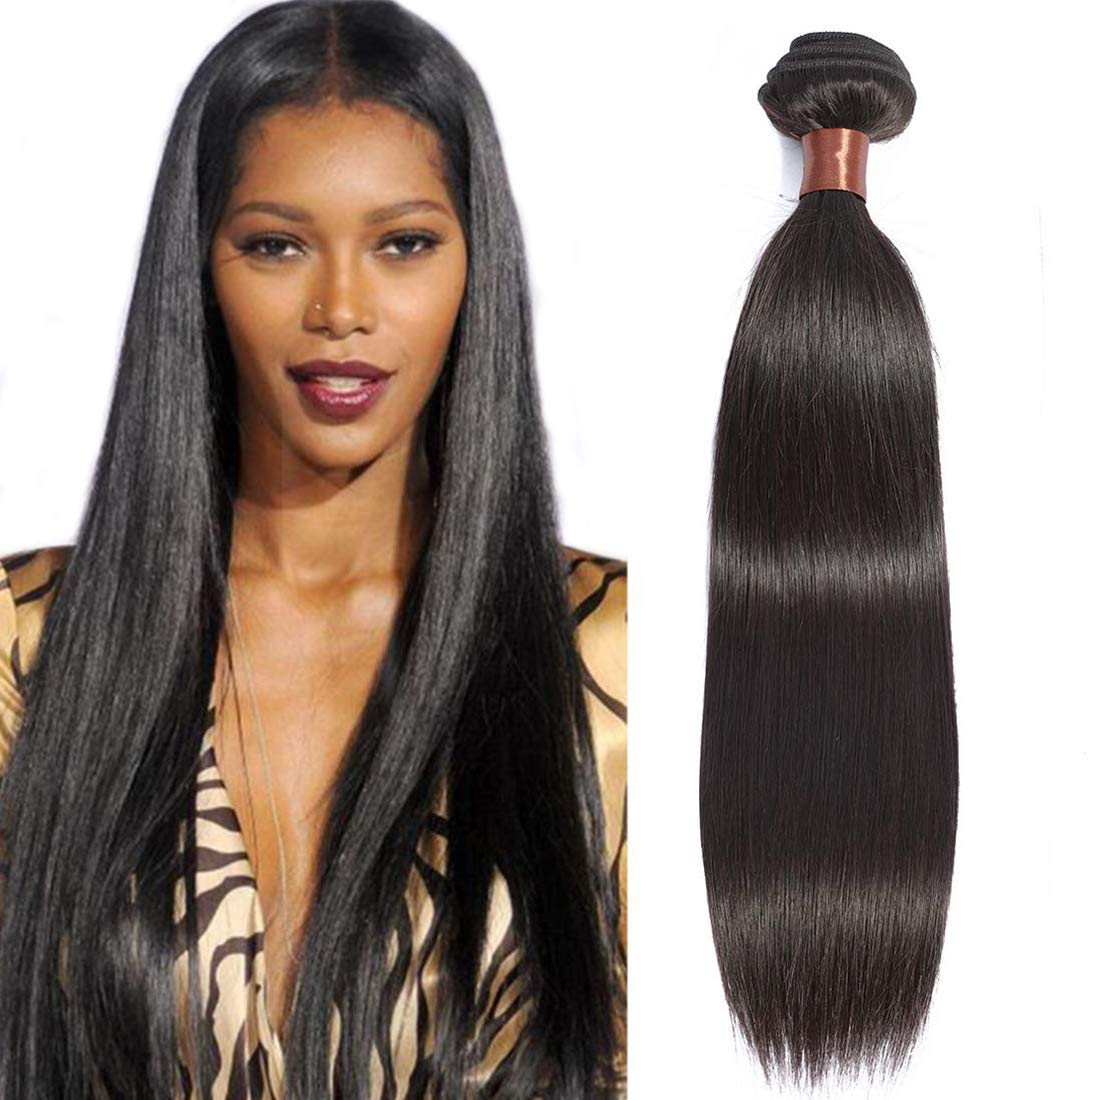 ANGIE QUEEN Hair Peruvian Straight Hair 22 Inch One Bundle 100% Unprocessed Virgin Human Hair Weft Extensions 100G Nature Color(One Bundle)